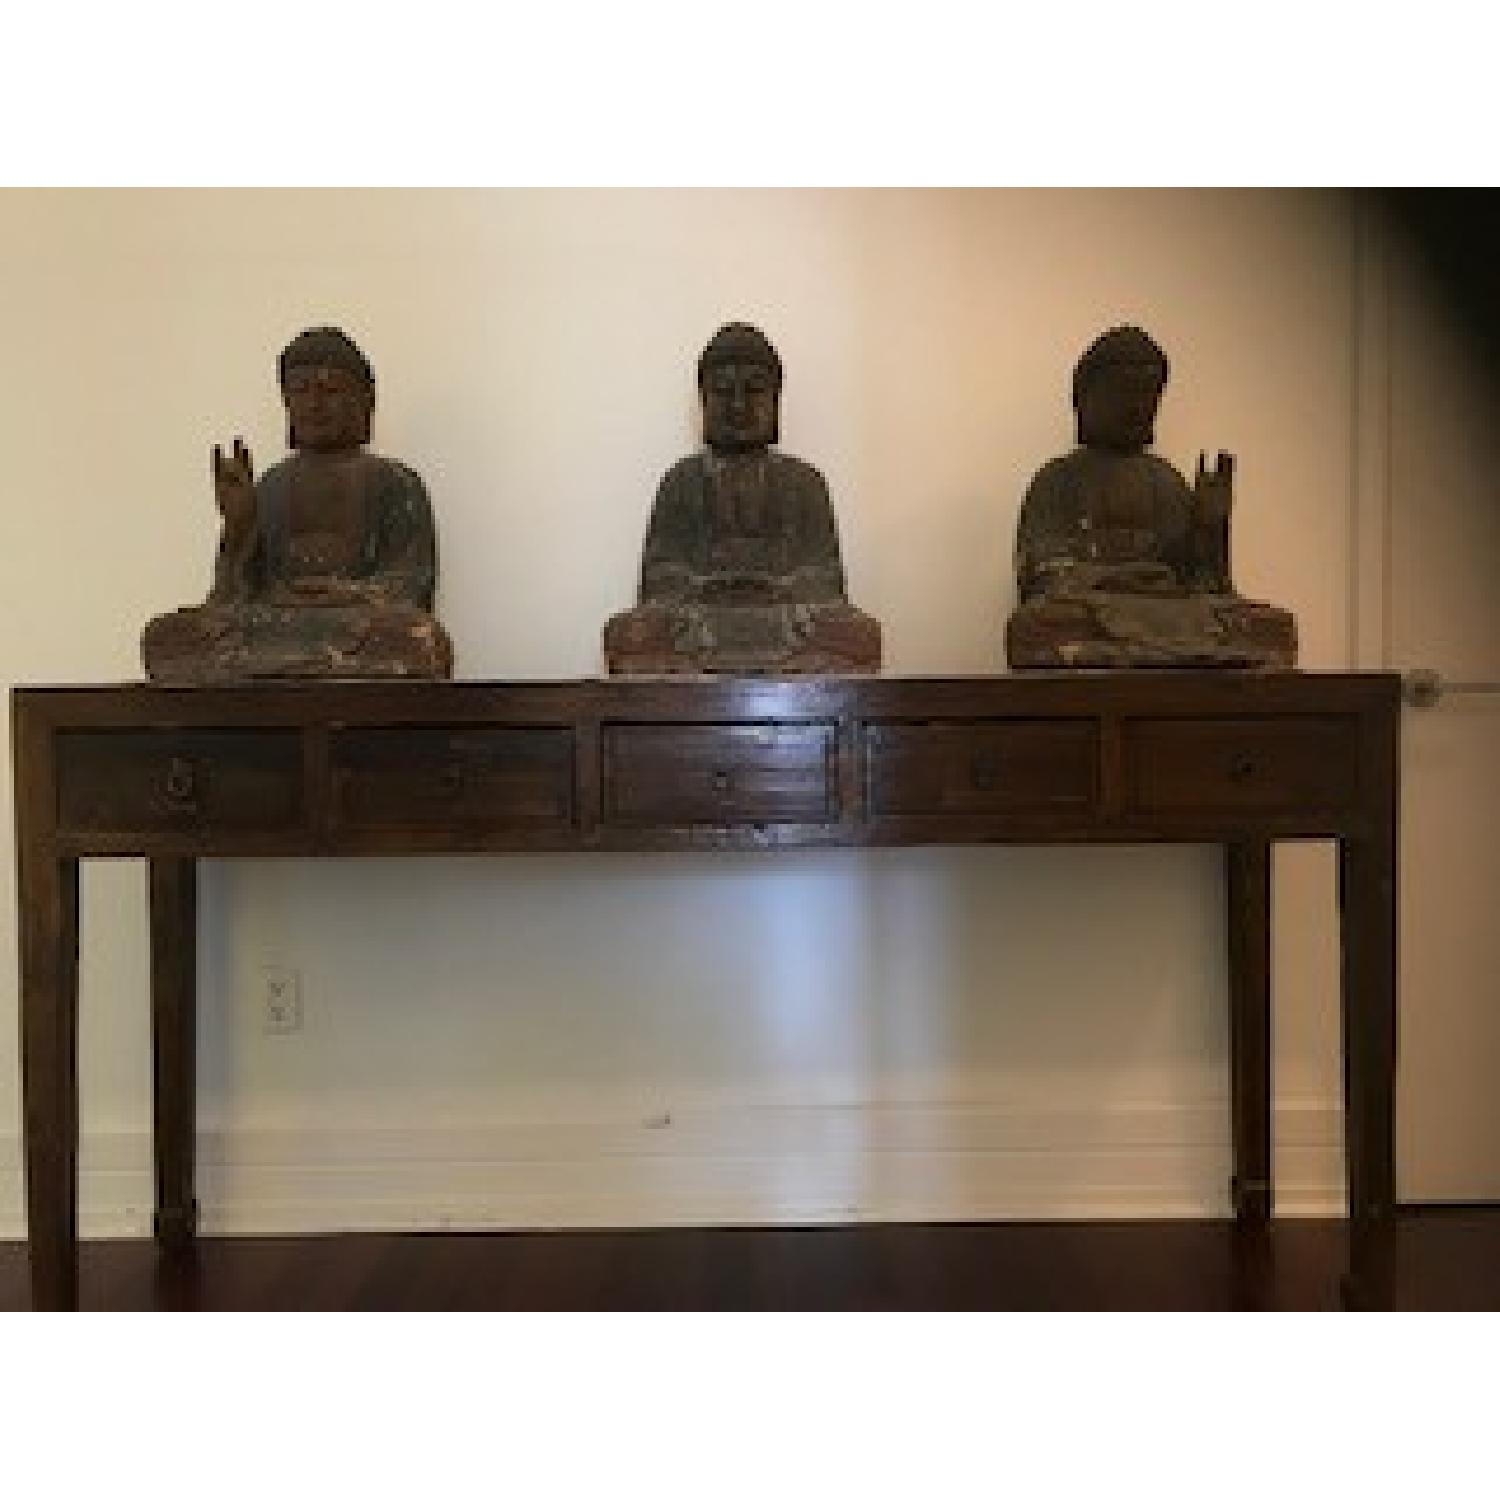 Chinese Long Display Console w/ Buddha Statues